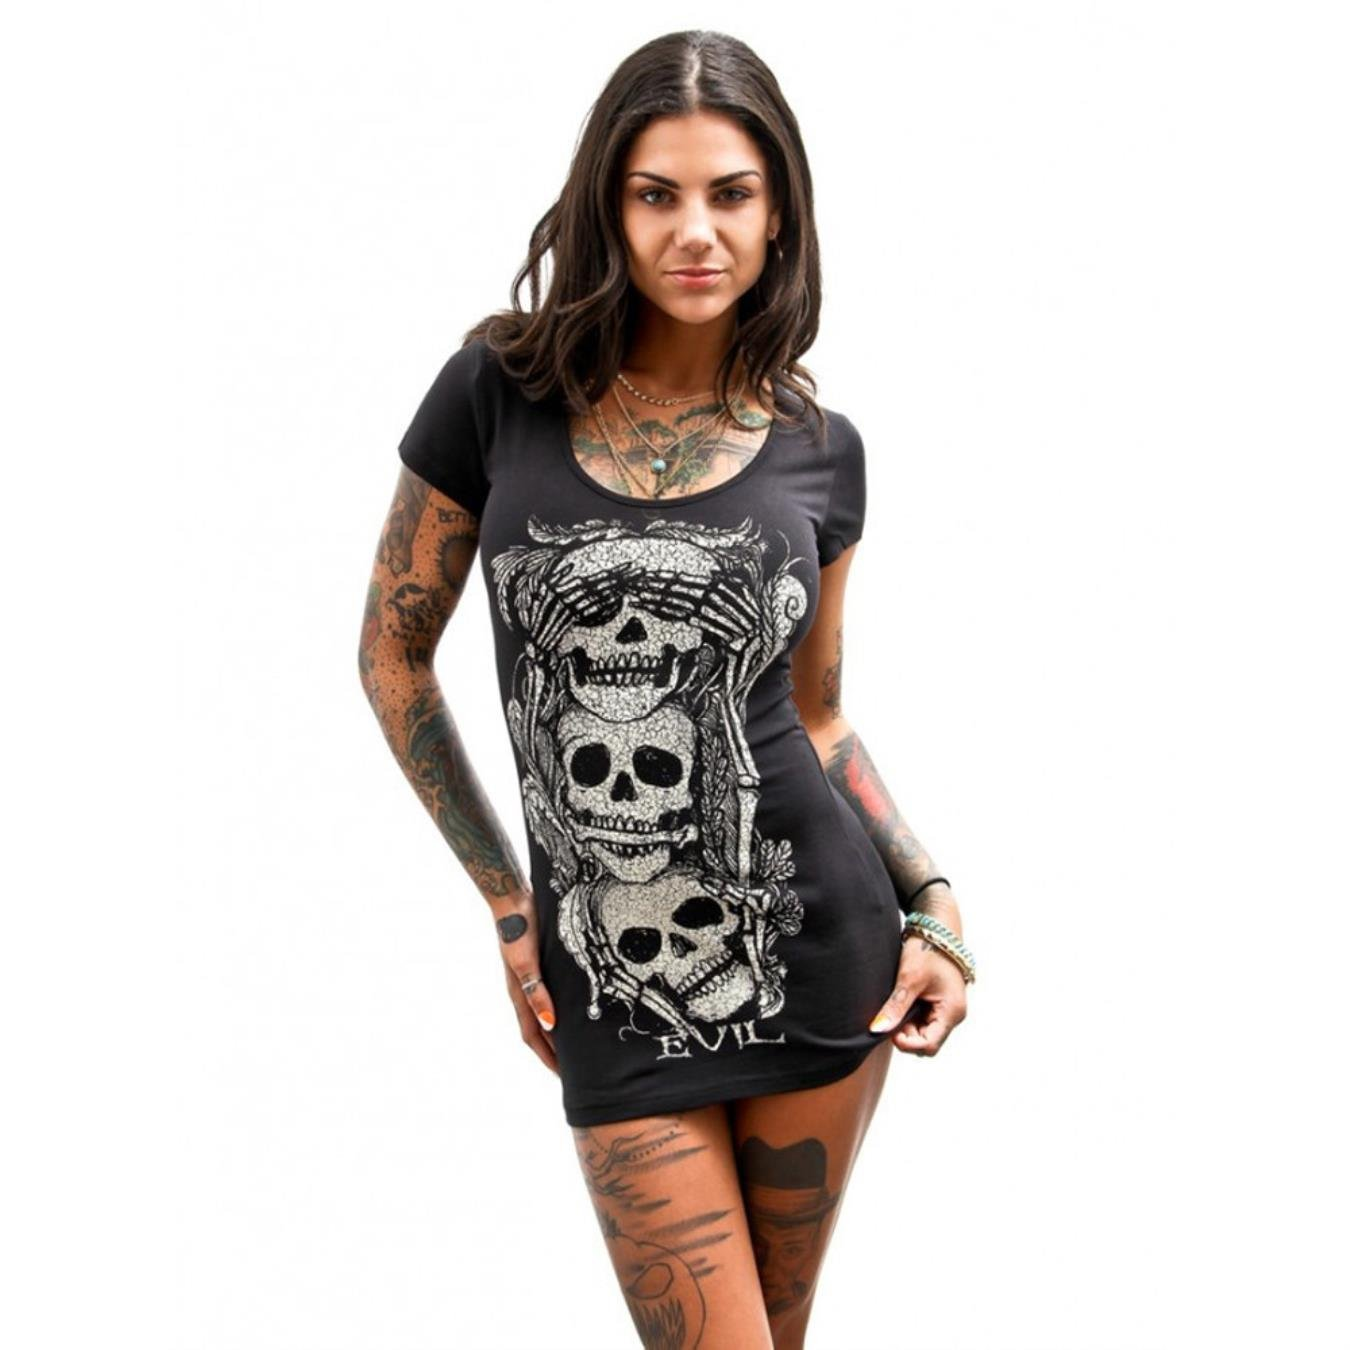 Amazon.com: Fashion T Shirt Women Casual Loose Short Sleeves Skull Printed Summer Crop top Vintage Tshirt Camisetas Mujer T-Shirt: Clothing